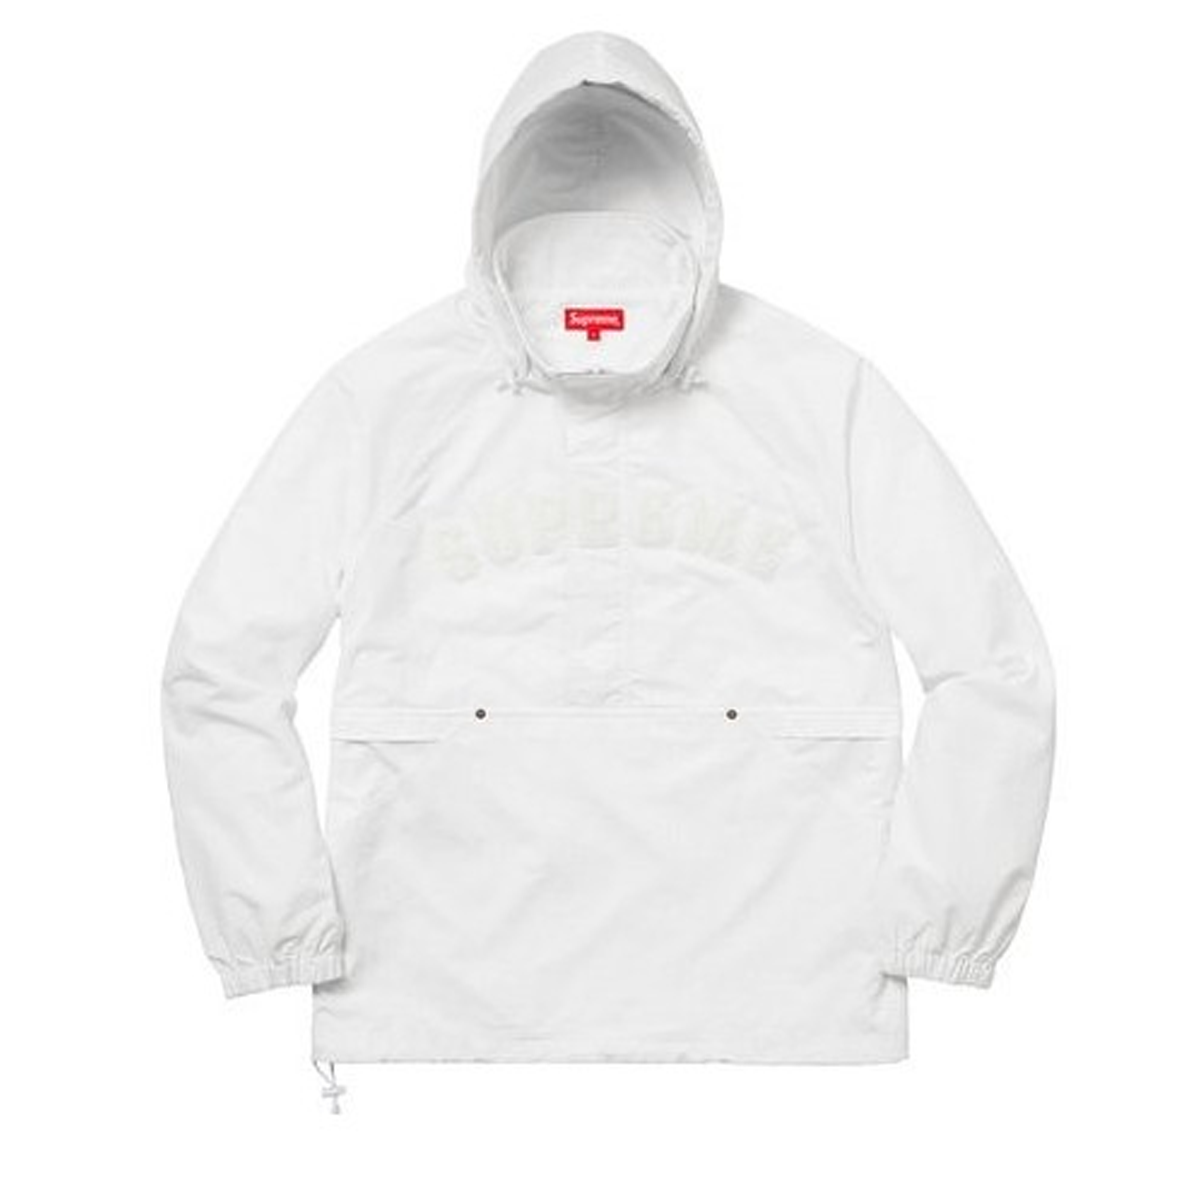 0621c796c1 Supreme Court Half Zip Pullover White – afterdrop